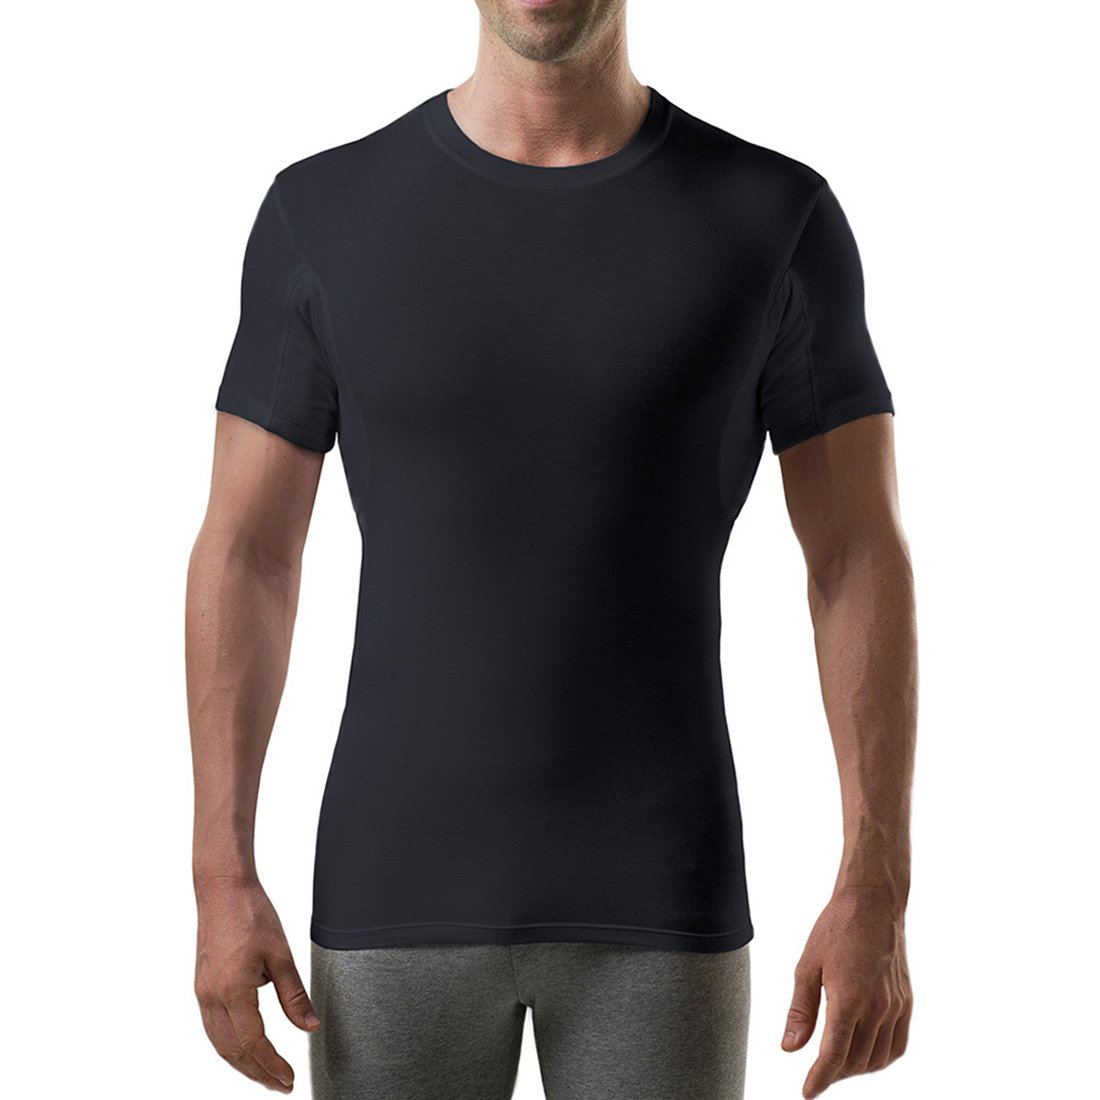 Thompson Tee with Sweat Pads Slim Fit Crew- Rayon from Bamboo -Black, Medium